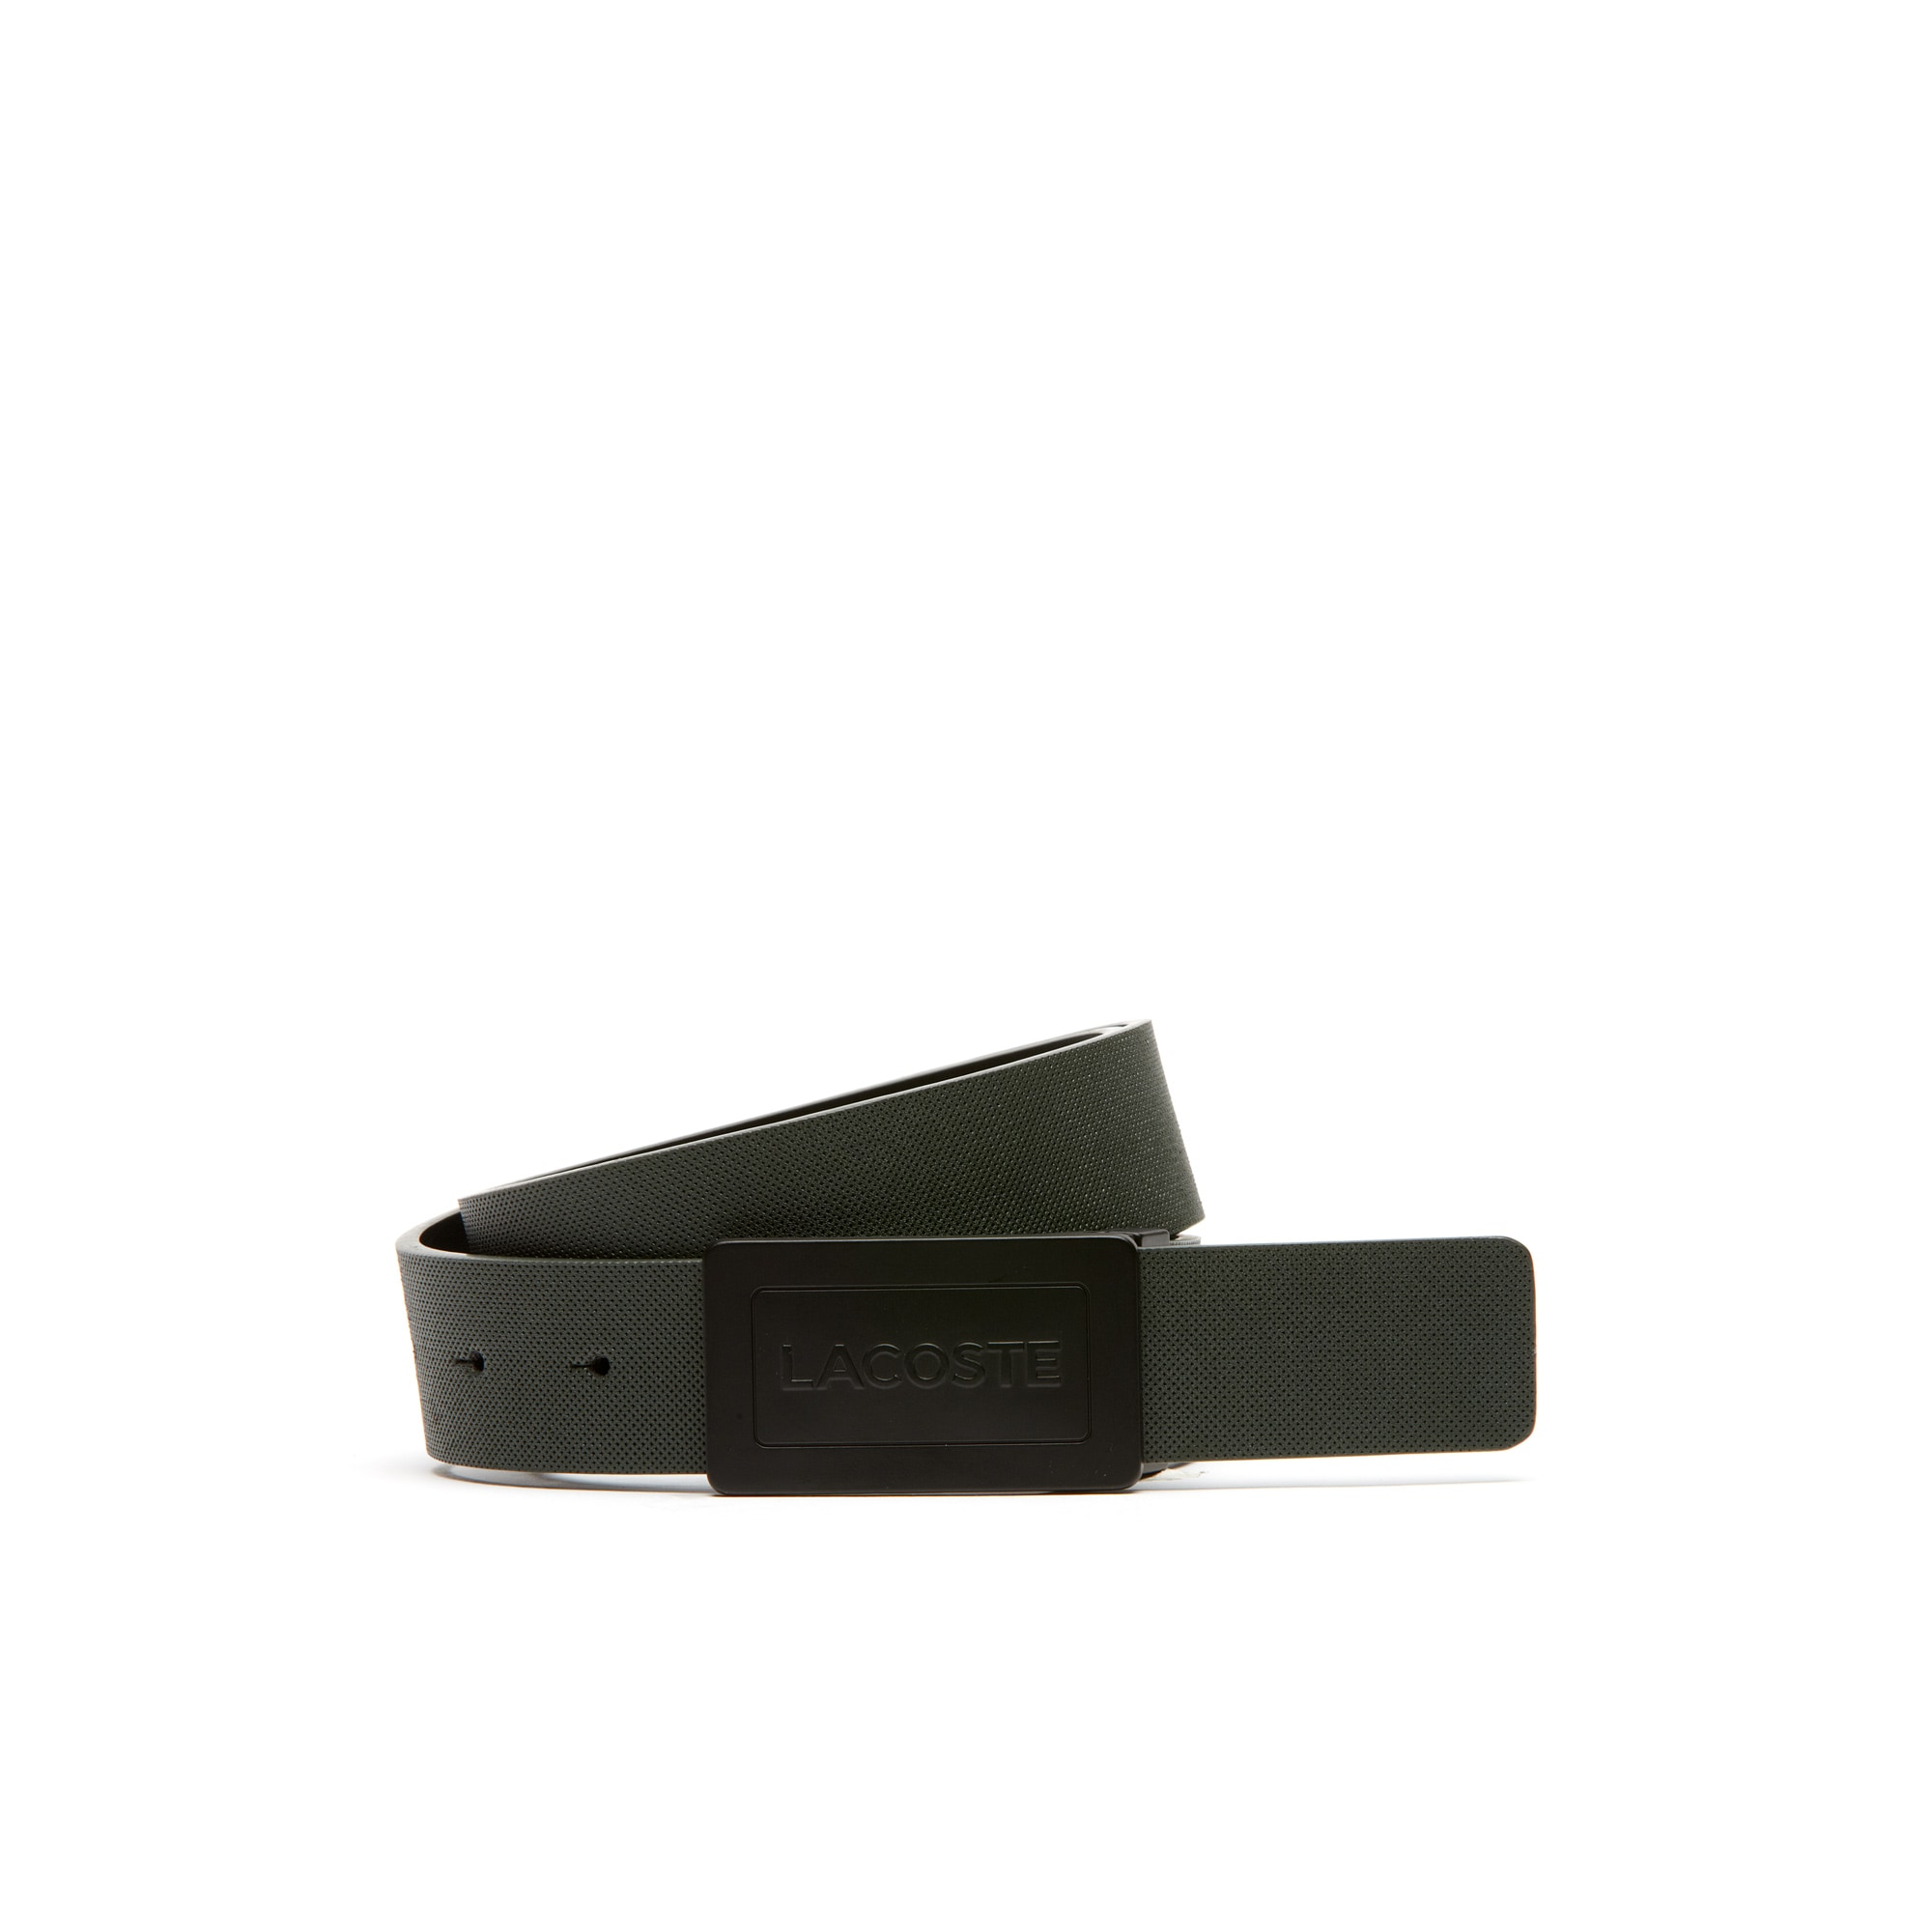 EDWARDS reversible belt in petit piqué embossed leather